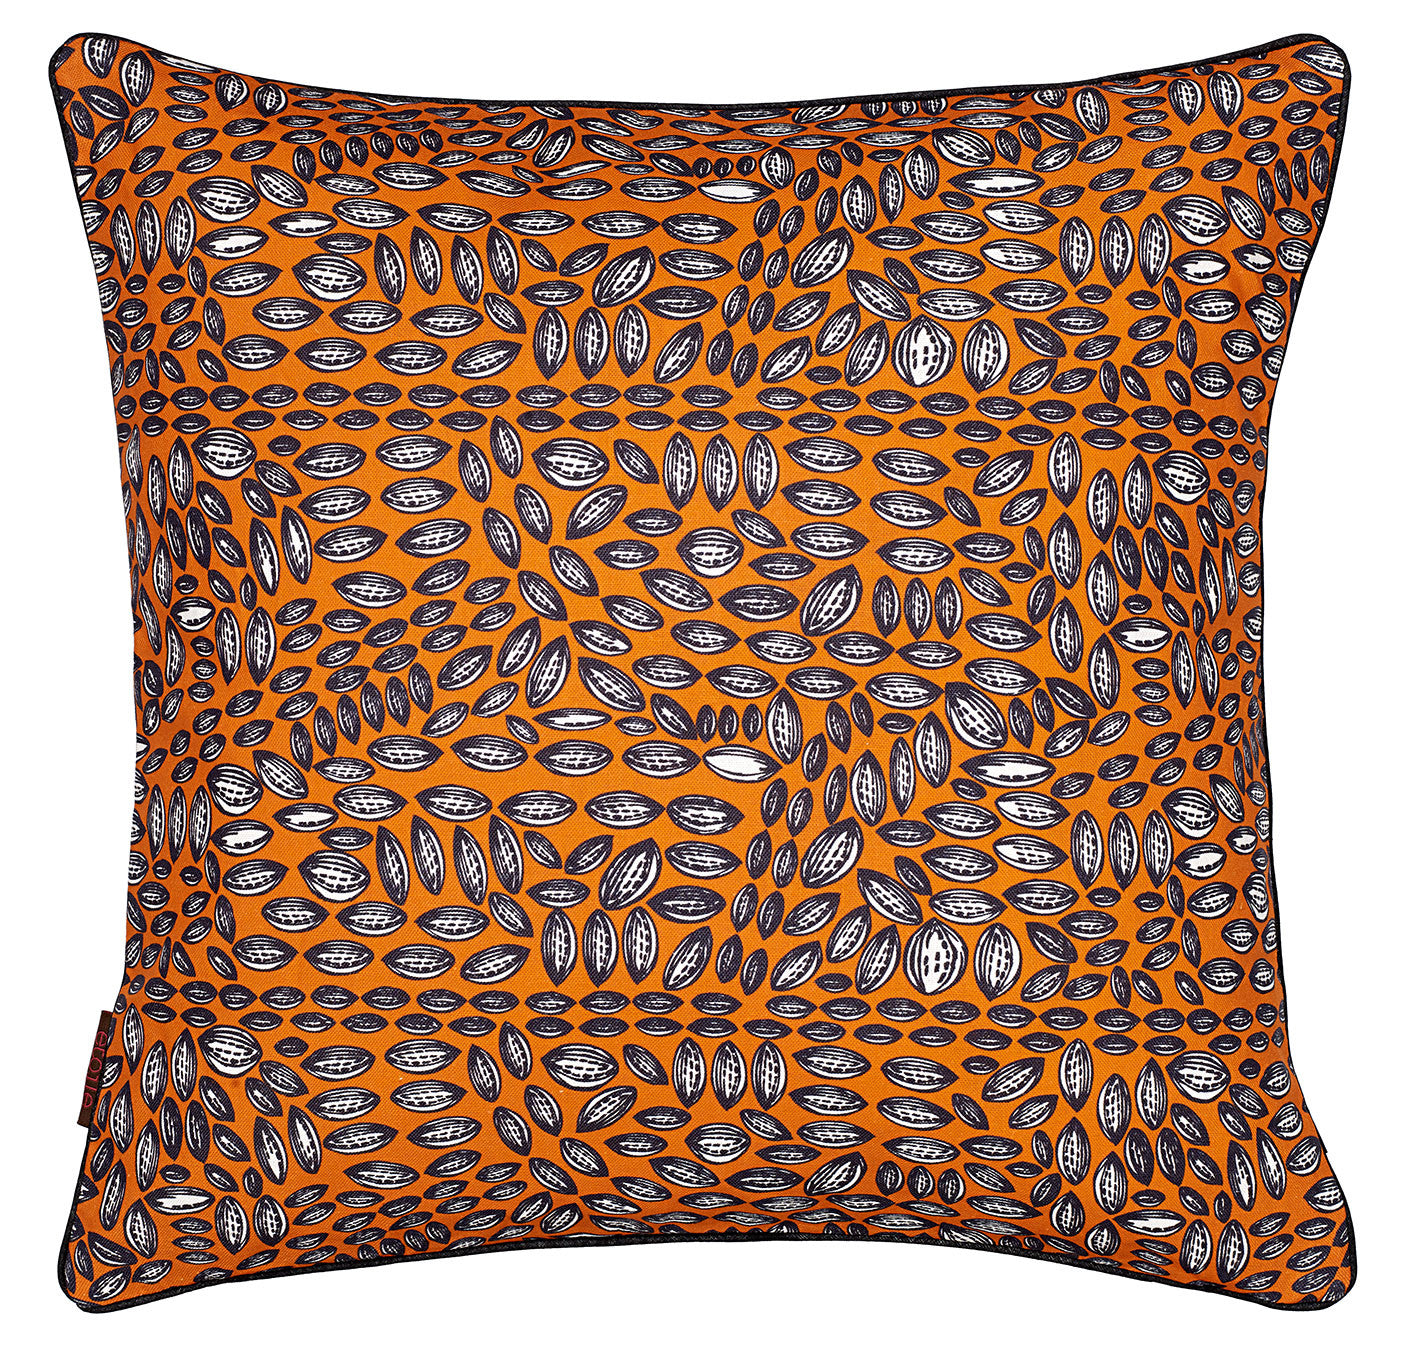 Graphic Cocoa Seed Pattern Linen Cushion in Bright Pumpkin Orange 45x45cm